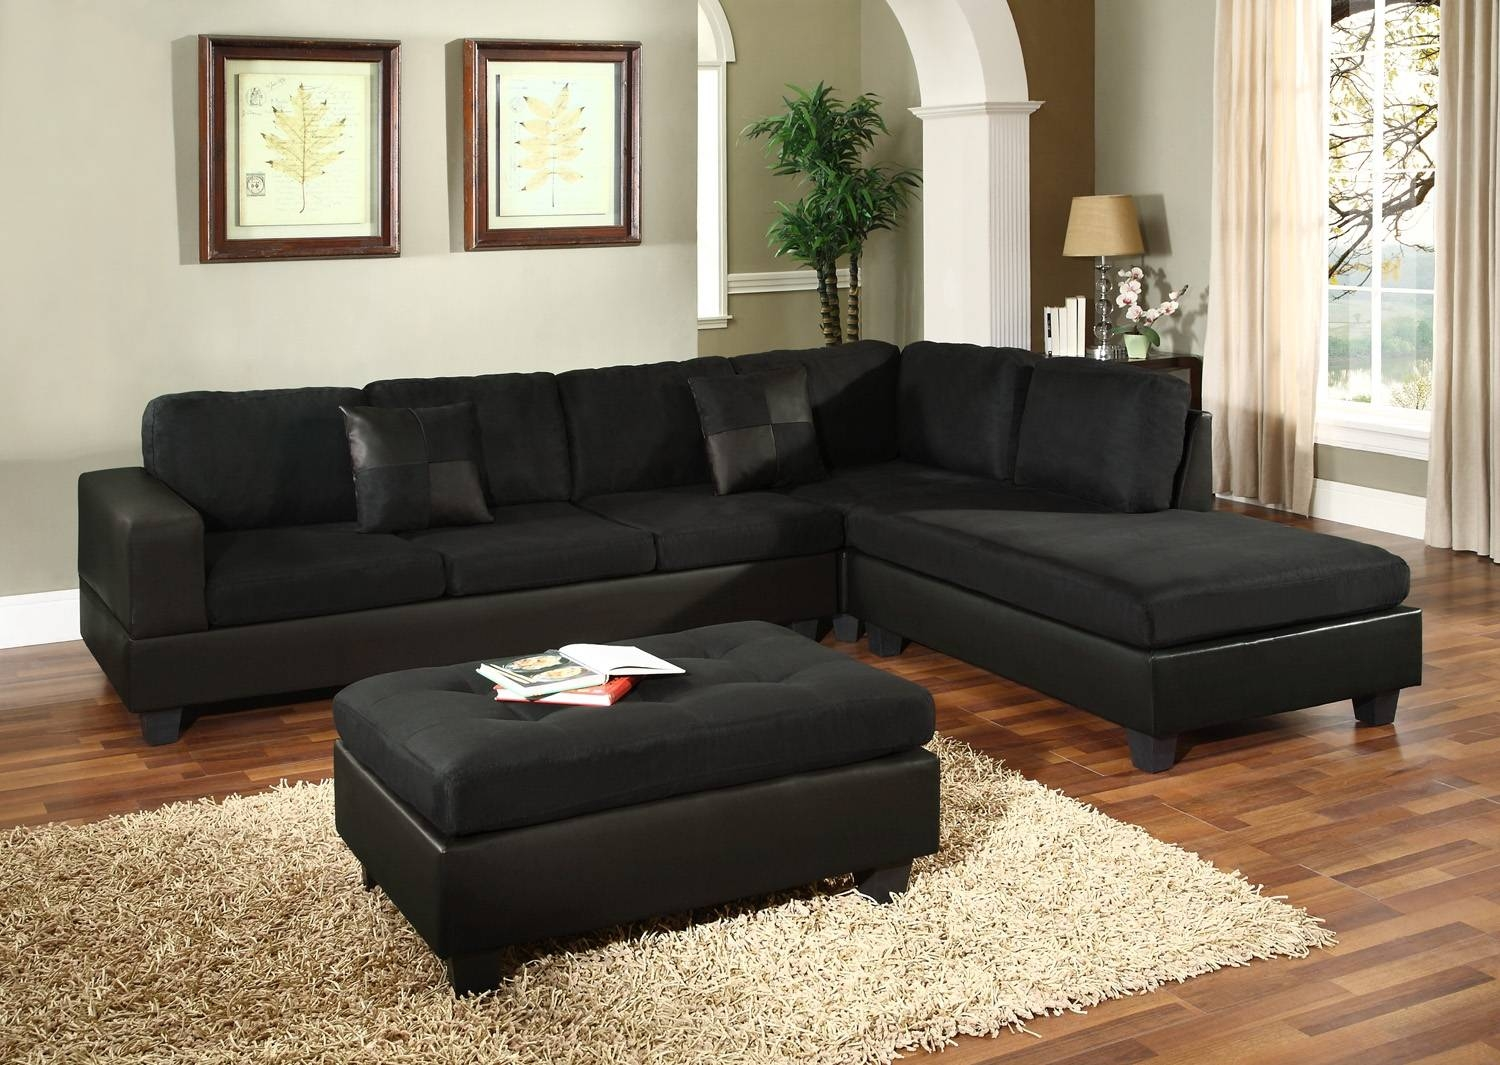 Eggplant Sectional Sofa - Ftempo Inspiration with Eggplant Sectional Sofa (Image 9 of 30)